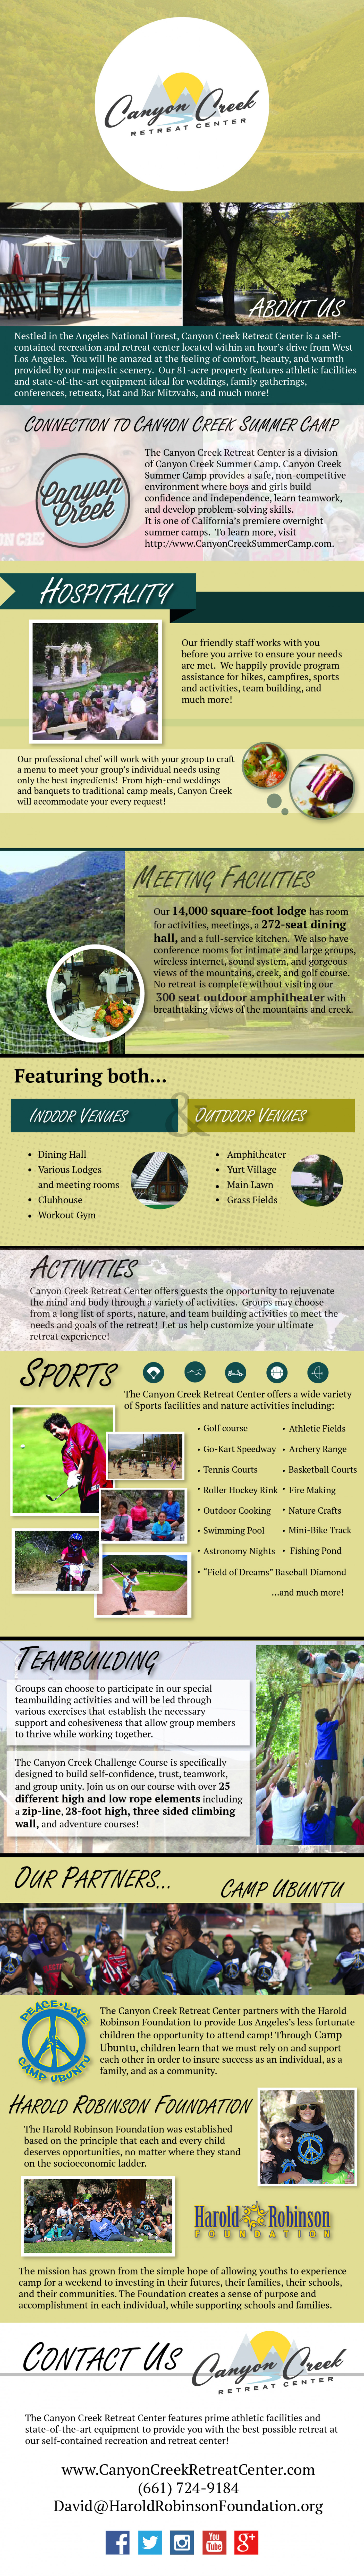 Canyon Creek Retreat Center Infographic